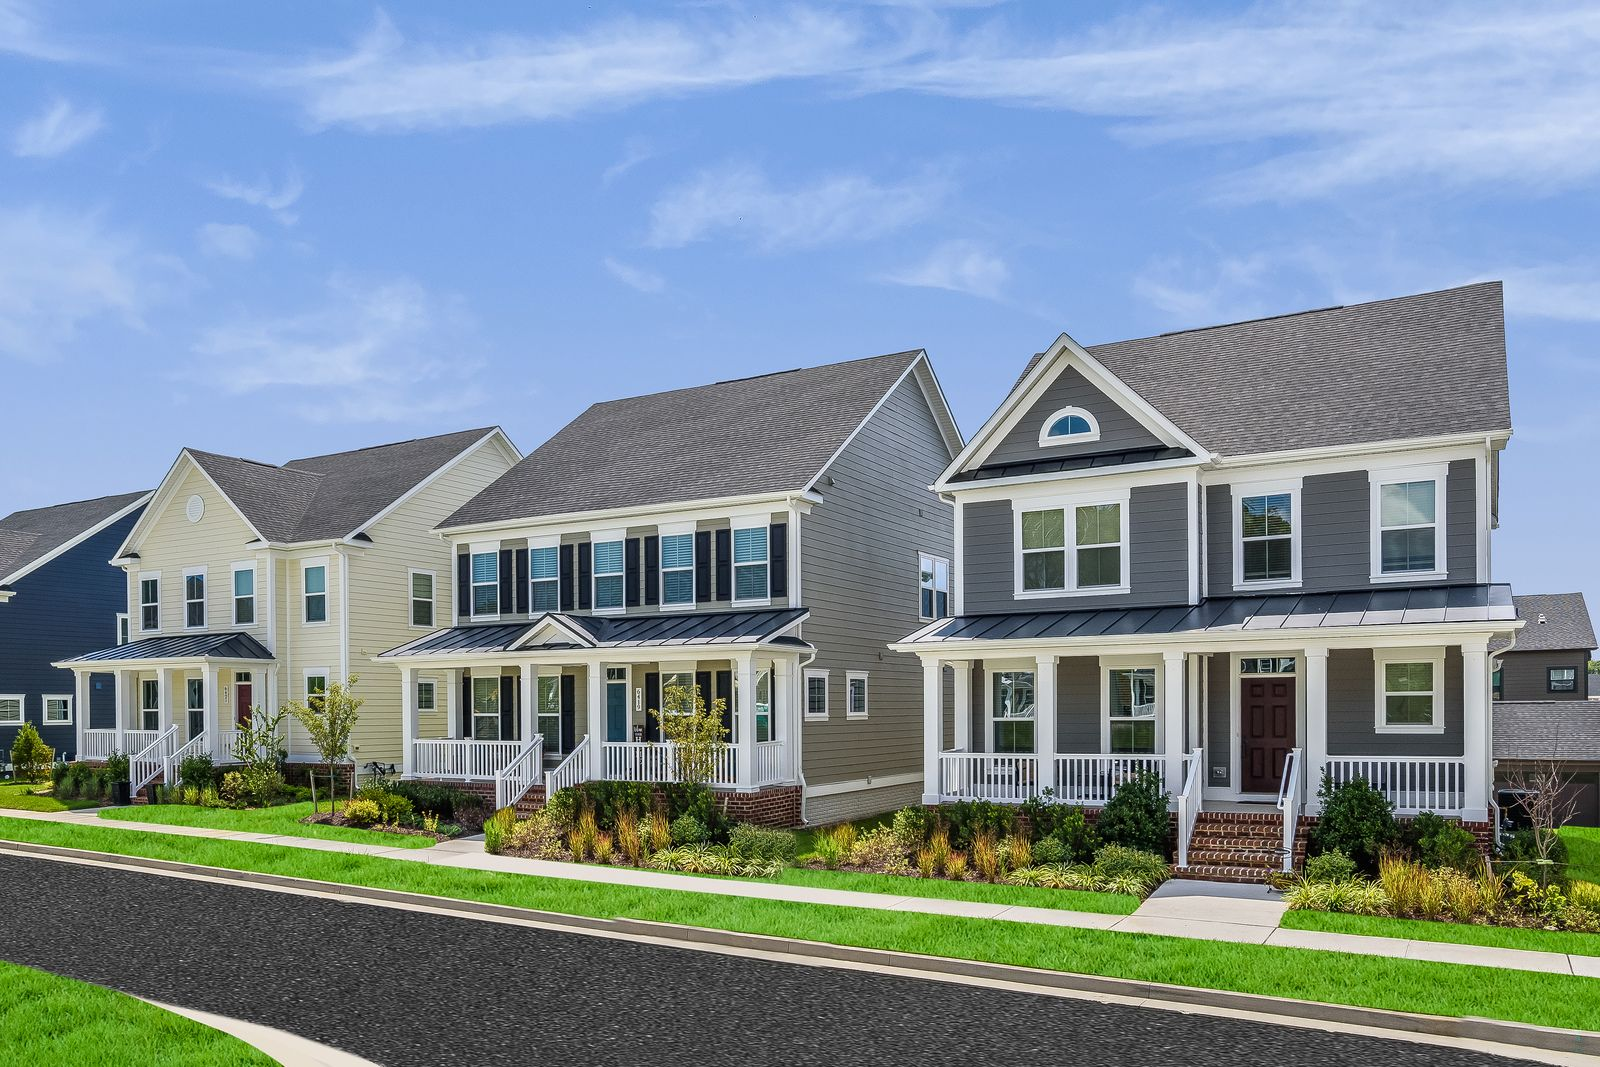 STEPHENS LANDING - ONE HOME REMAINING FROM THE UPPER $400S